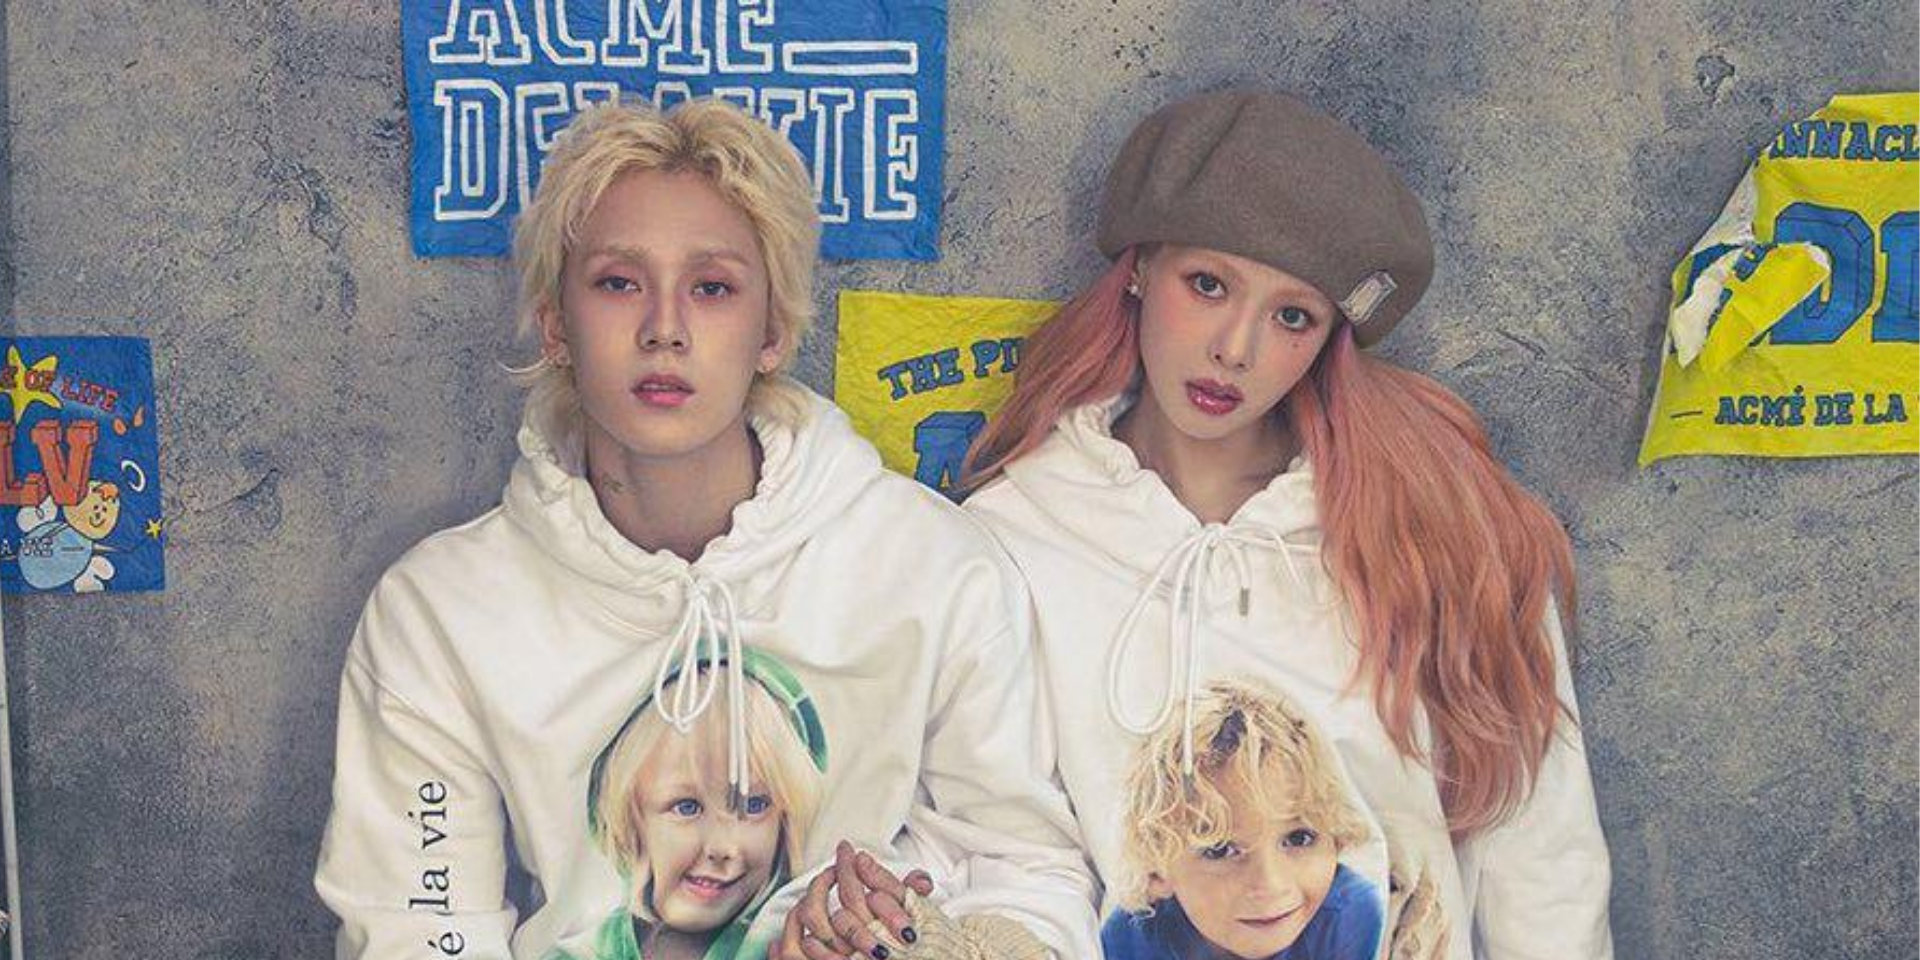 HyunA and DAWN release collaborative EP '1+1=1' with music video for 'PING PONG' - watch